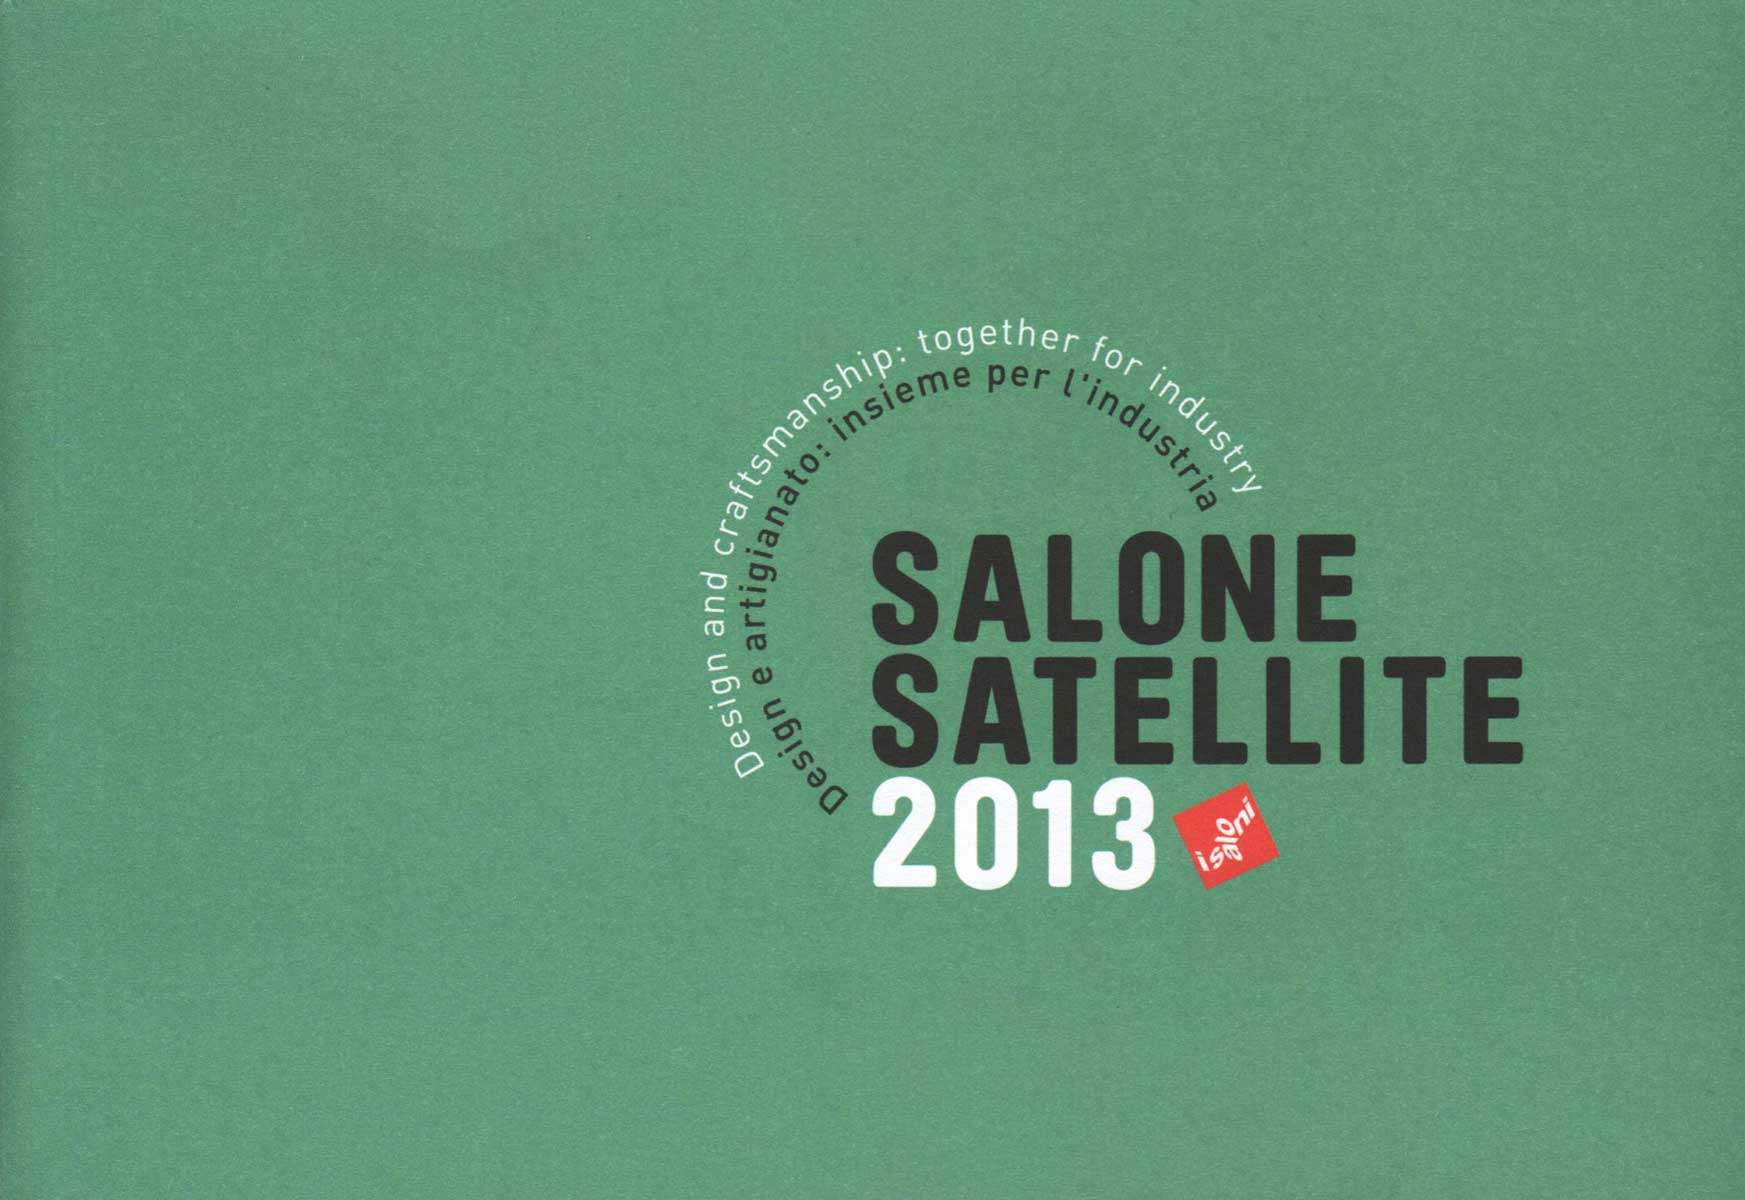 SALONE SATELLITE 04-2013